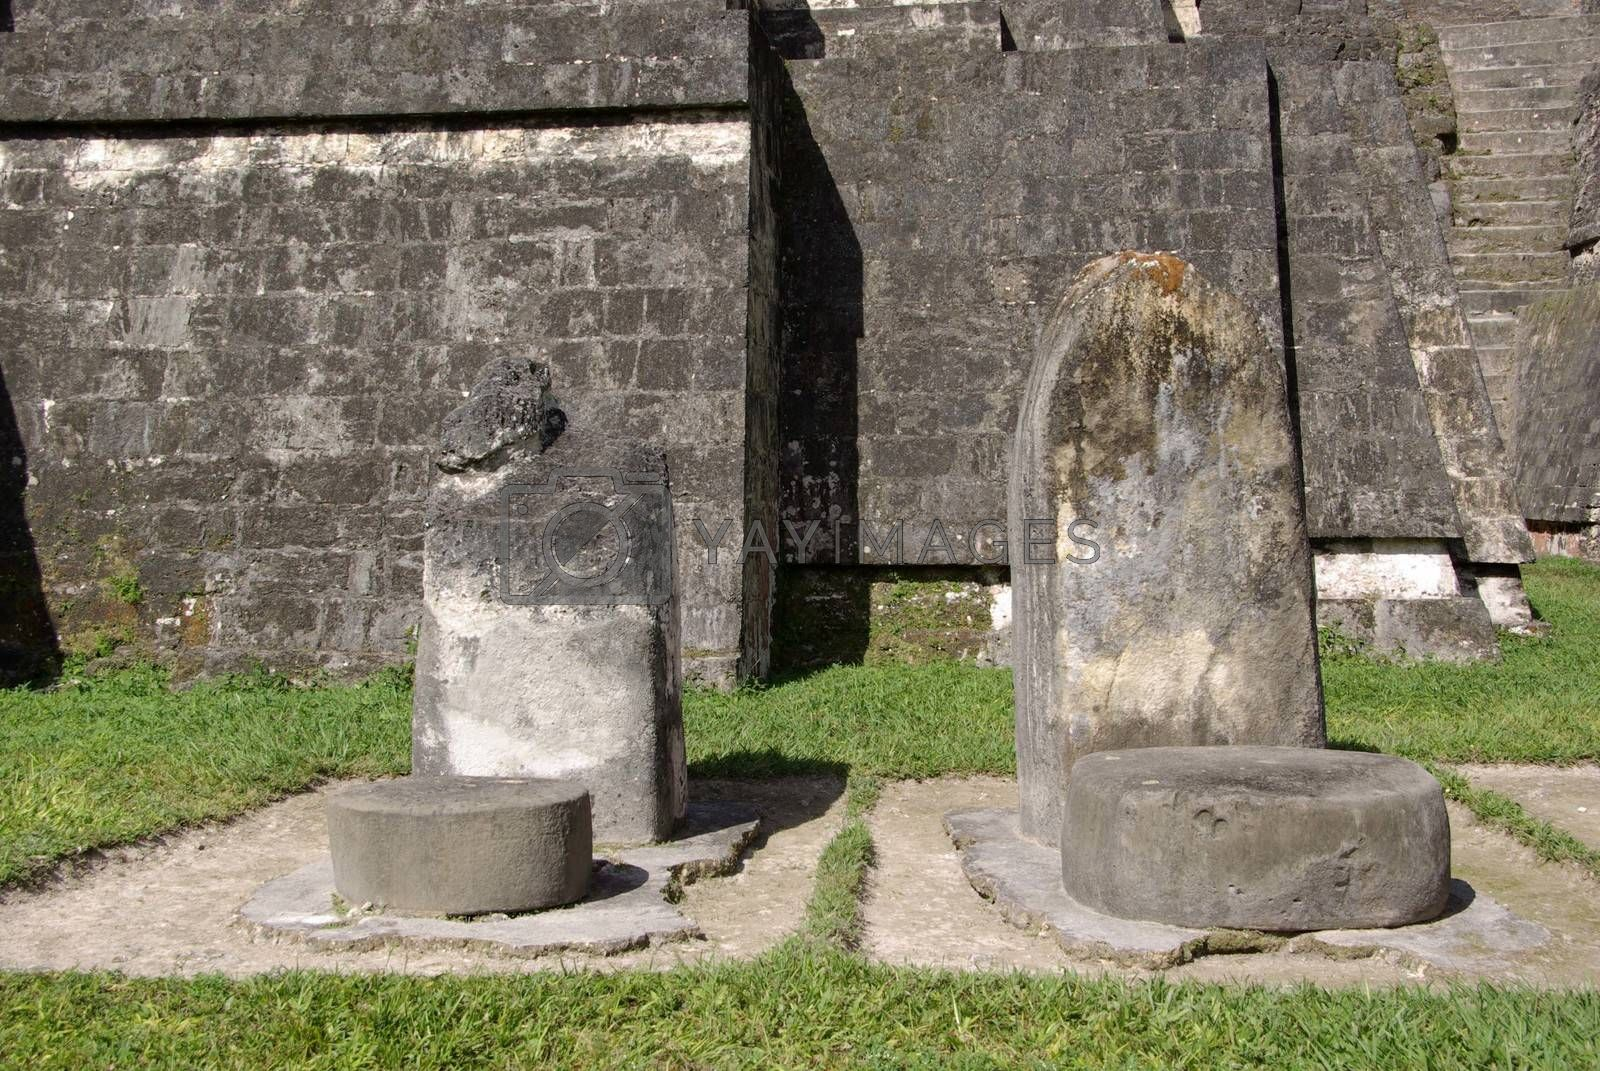 Mayan steles in the Mayan ruins of Tikal in Guatemala, Central America